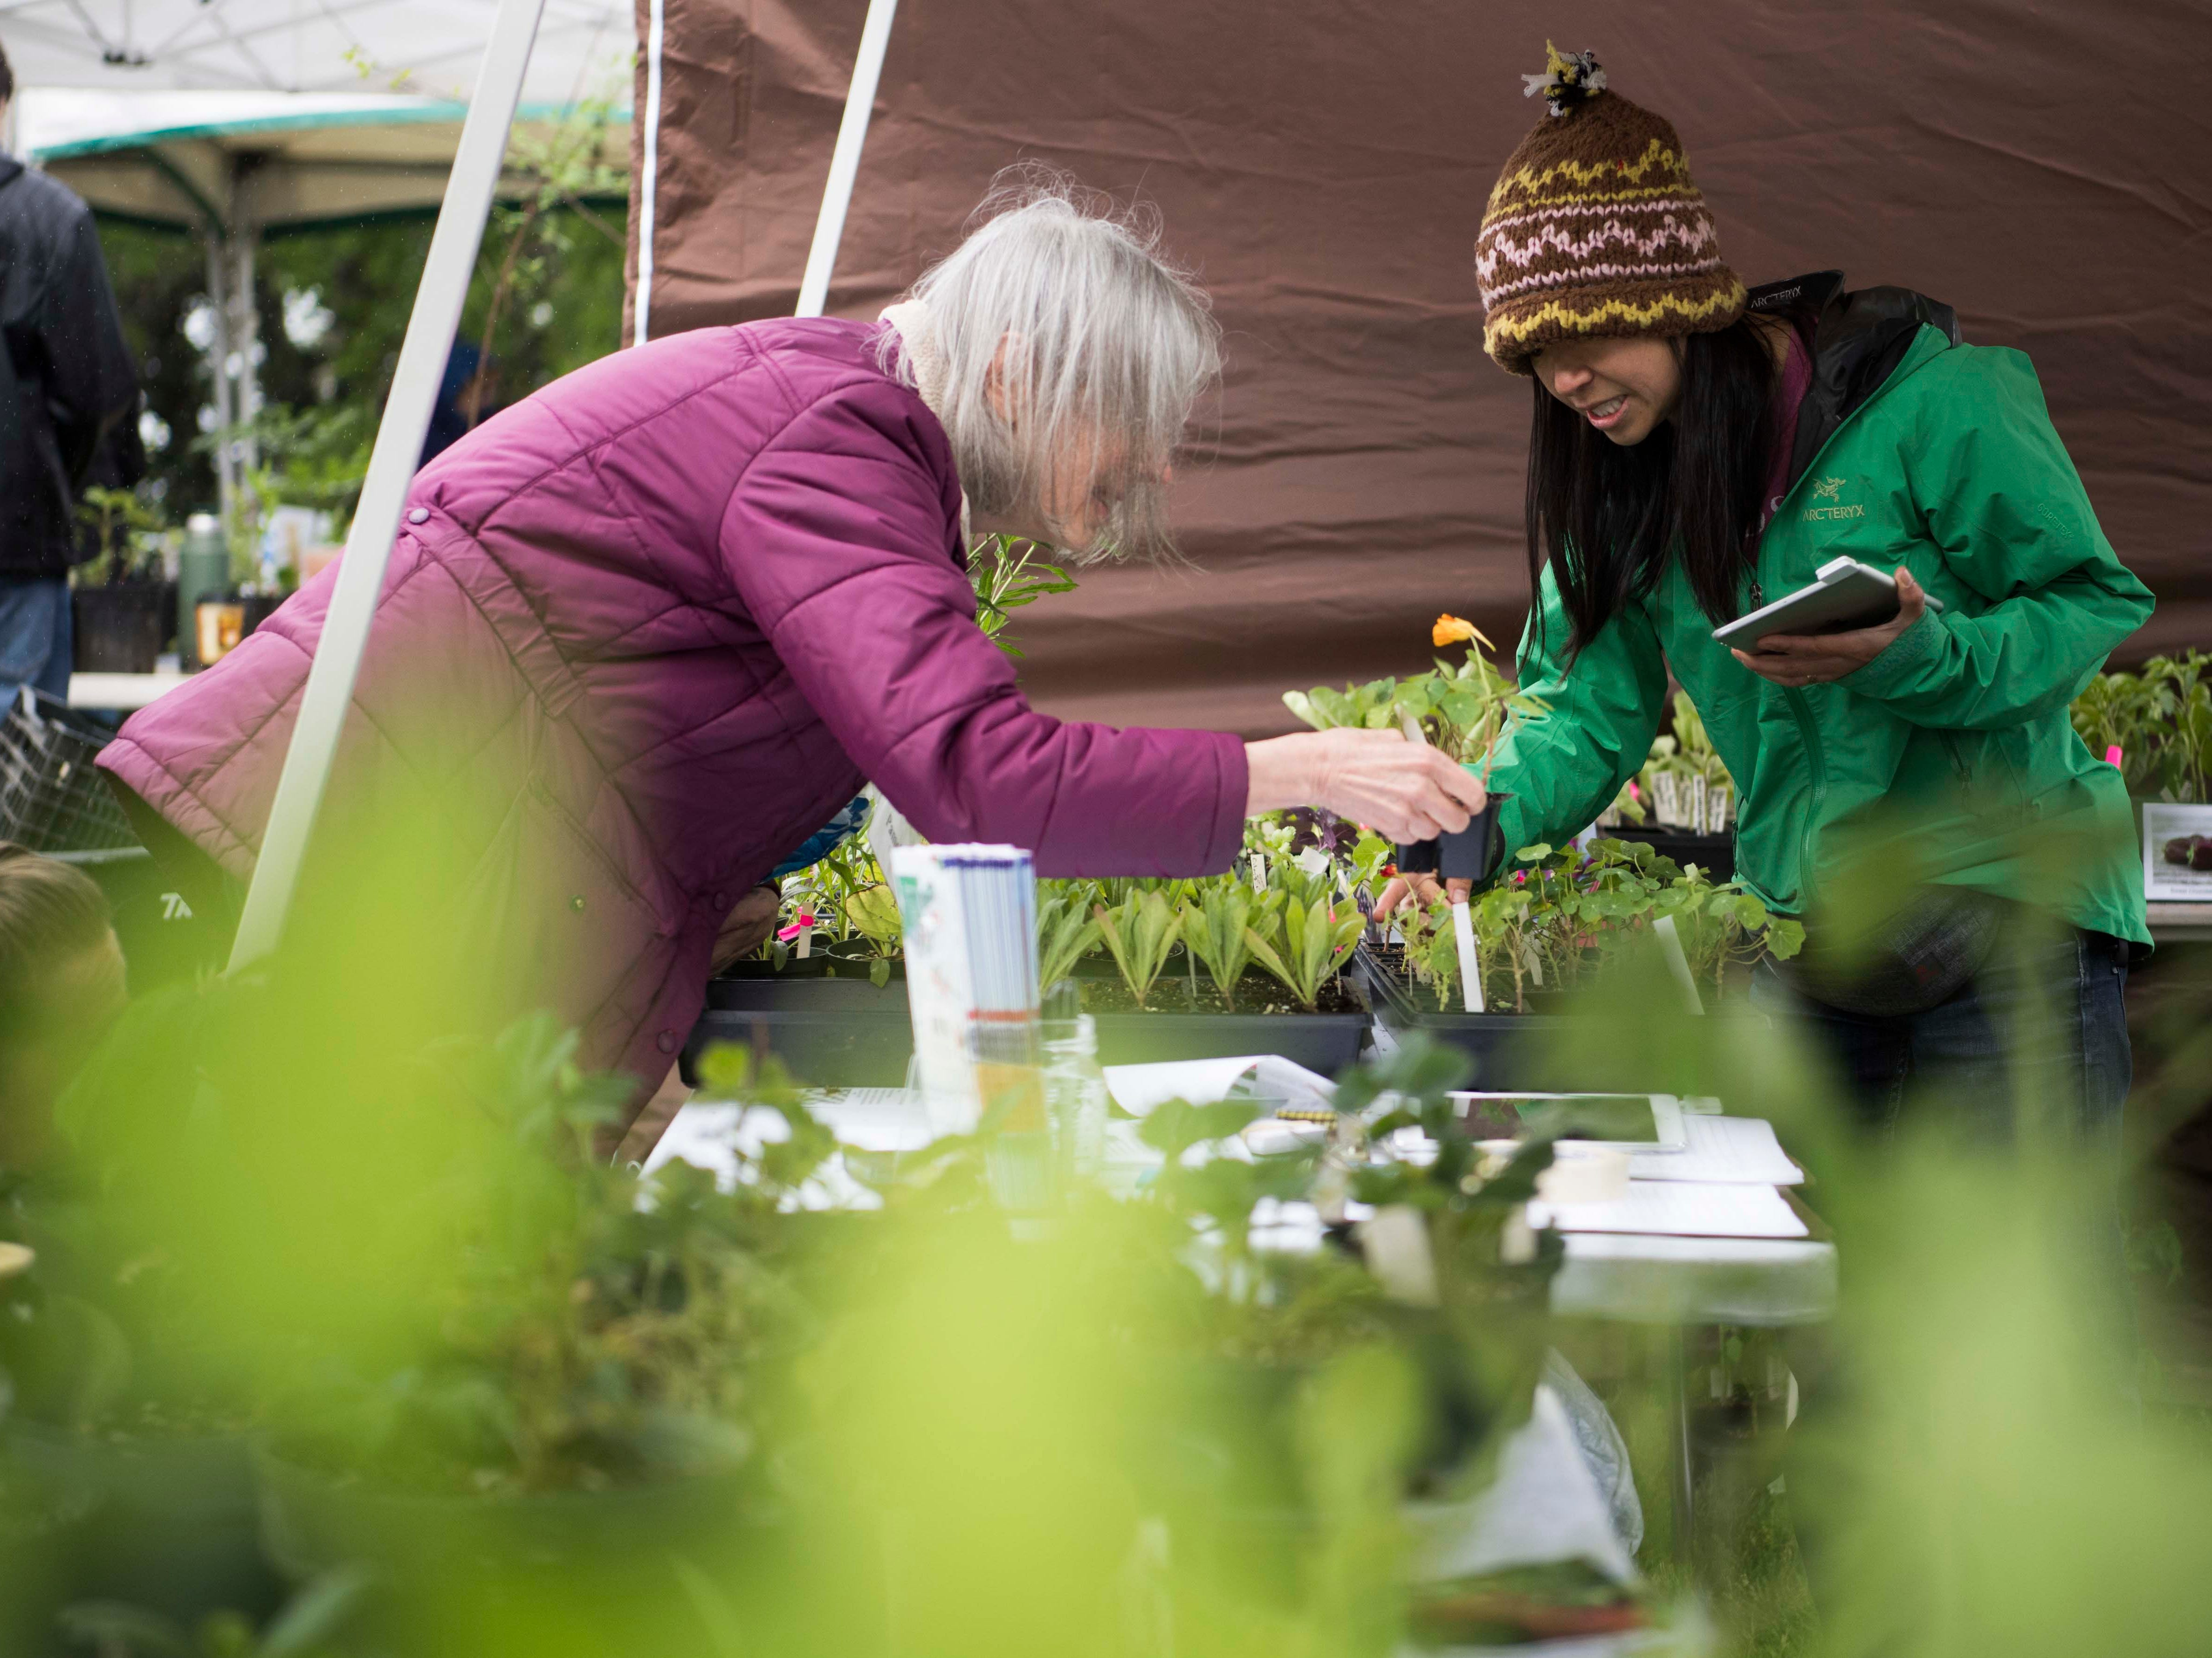 At left Pamela Dritt, of Concord, Mass. speaks to Khann Chov of Knoxville, about plants at Earthfest 2019 at the Knoxville Botanical Gardens in East Knoxville, Saturday, April 20, 2019.